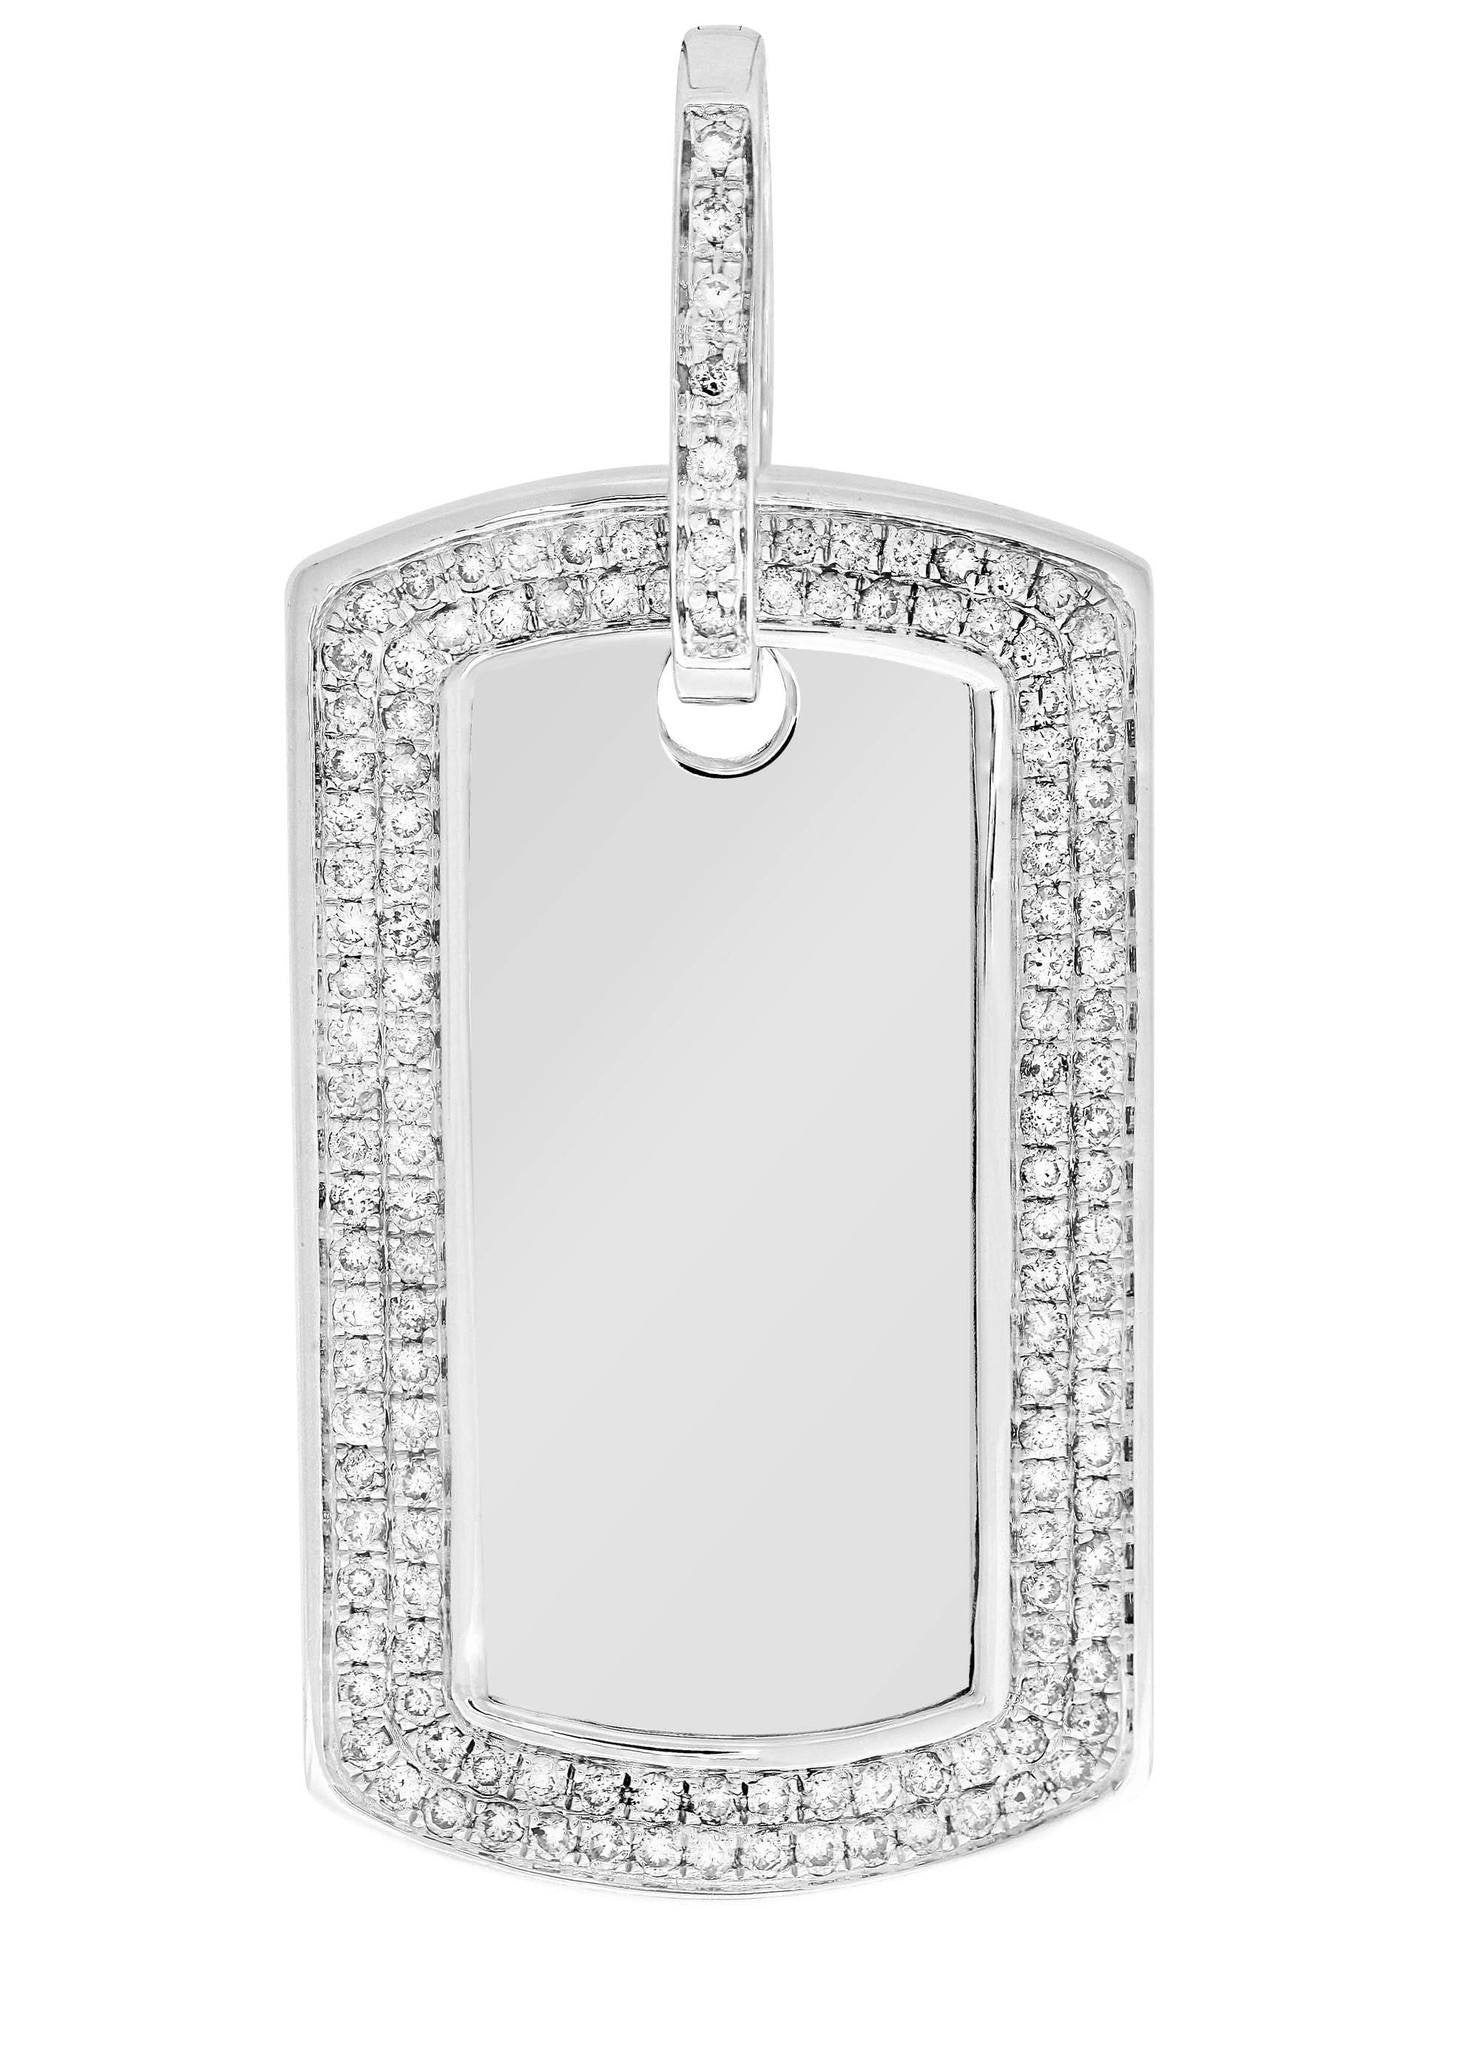 Diamond Dog Tag Pendant / 14.21 Grams / 2.21 Carats